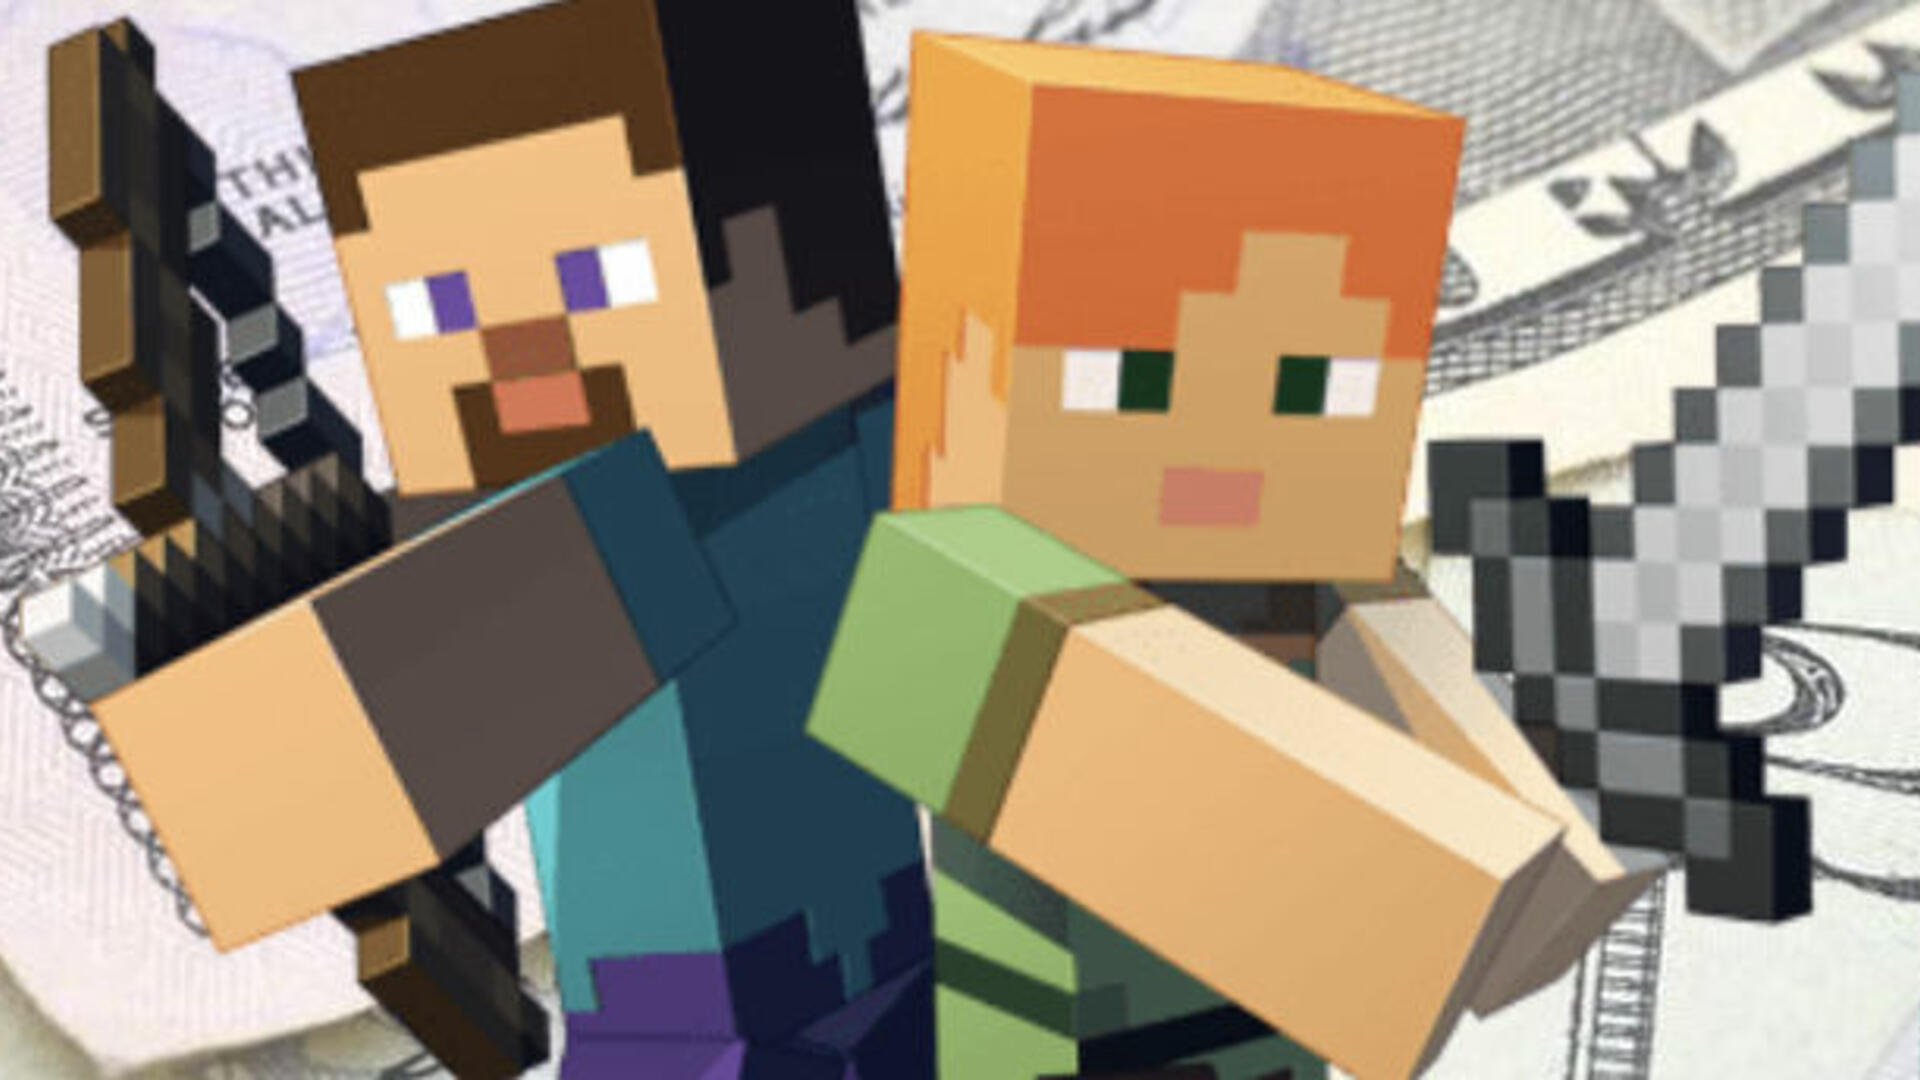 Minecraft Black Friday Deals Extraordinaire - Toys, Playsets, Games, and More